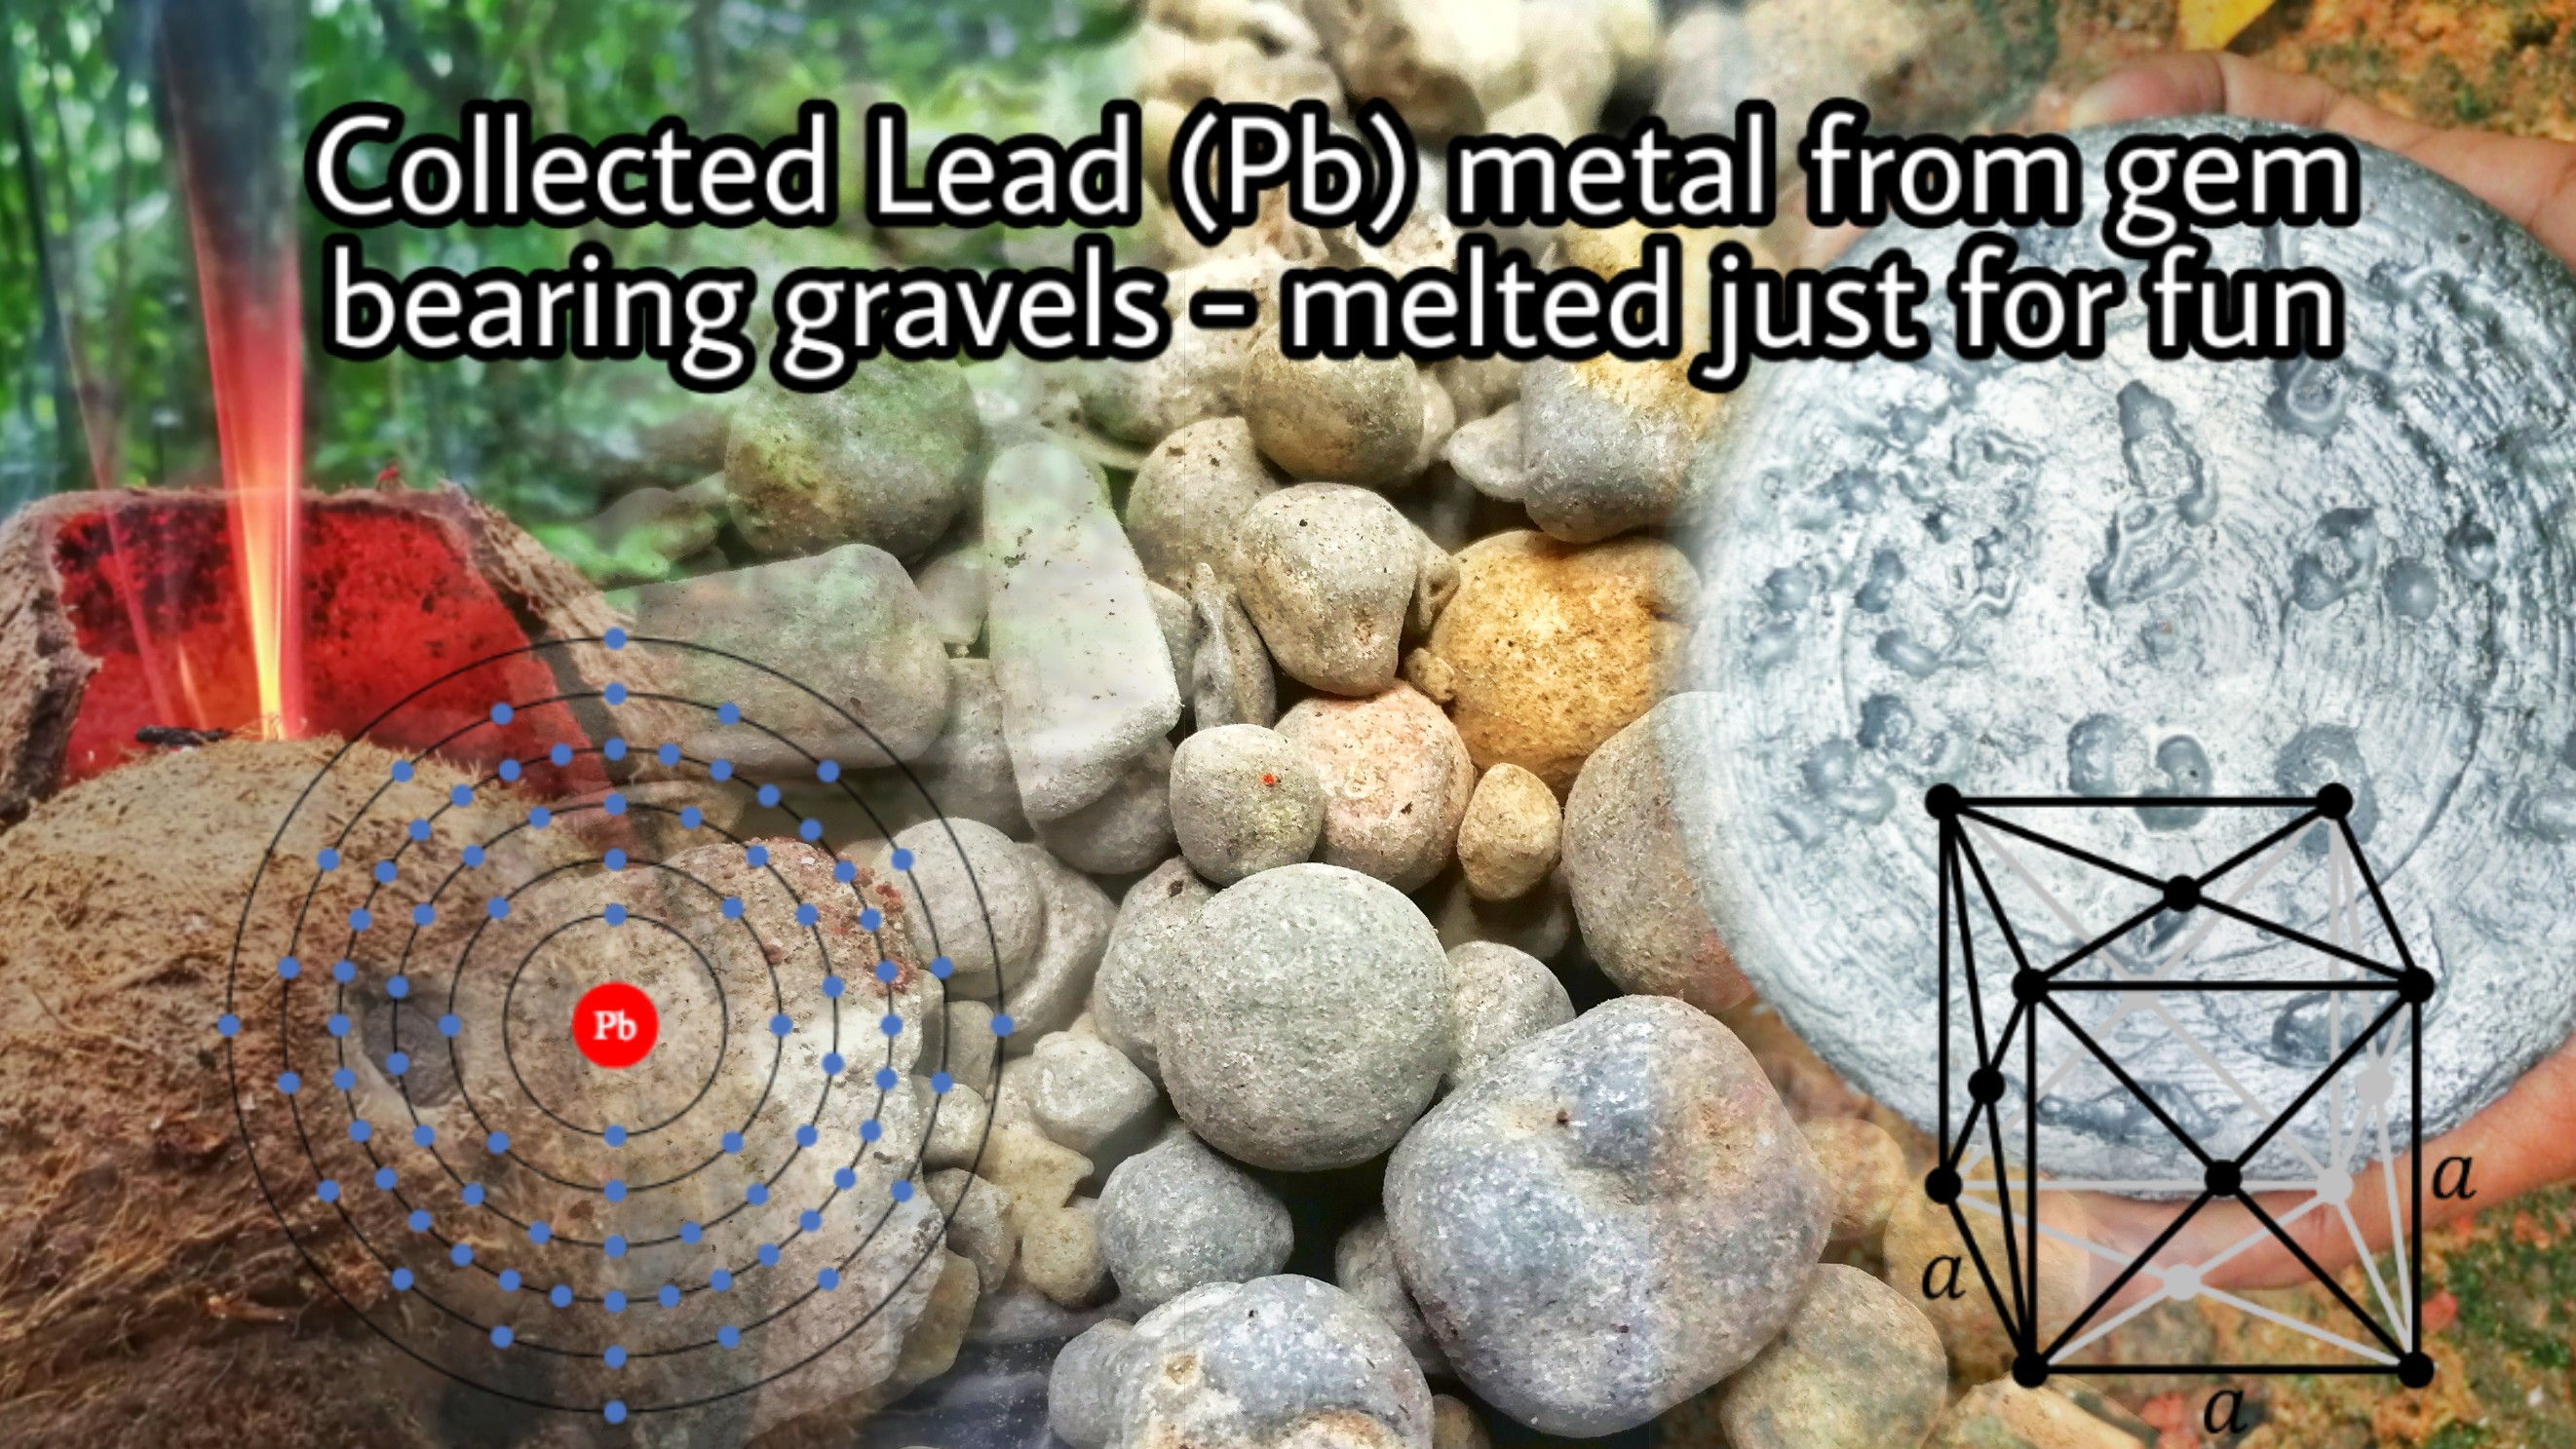 Collected Lead (Pb) Metal from gem bearing gravels